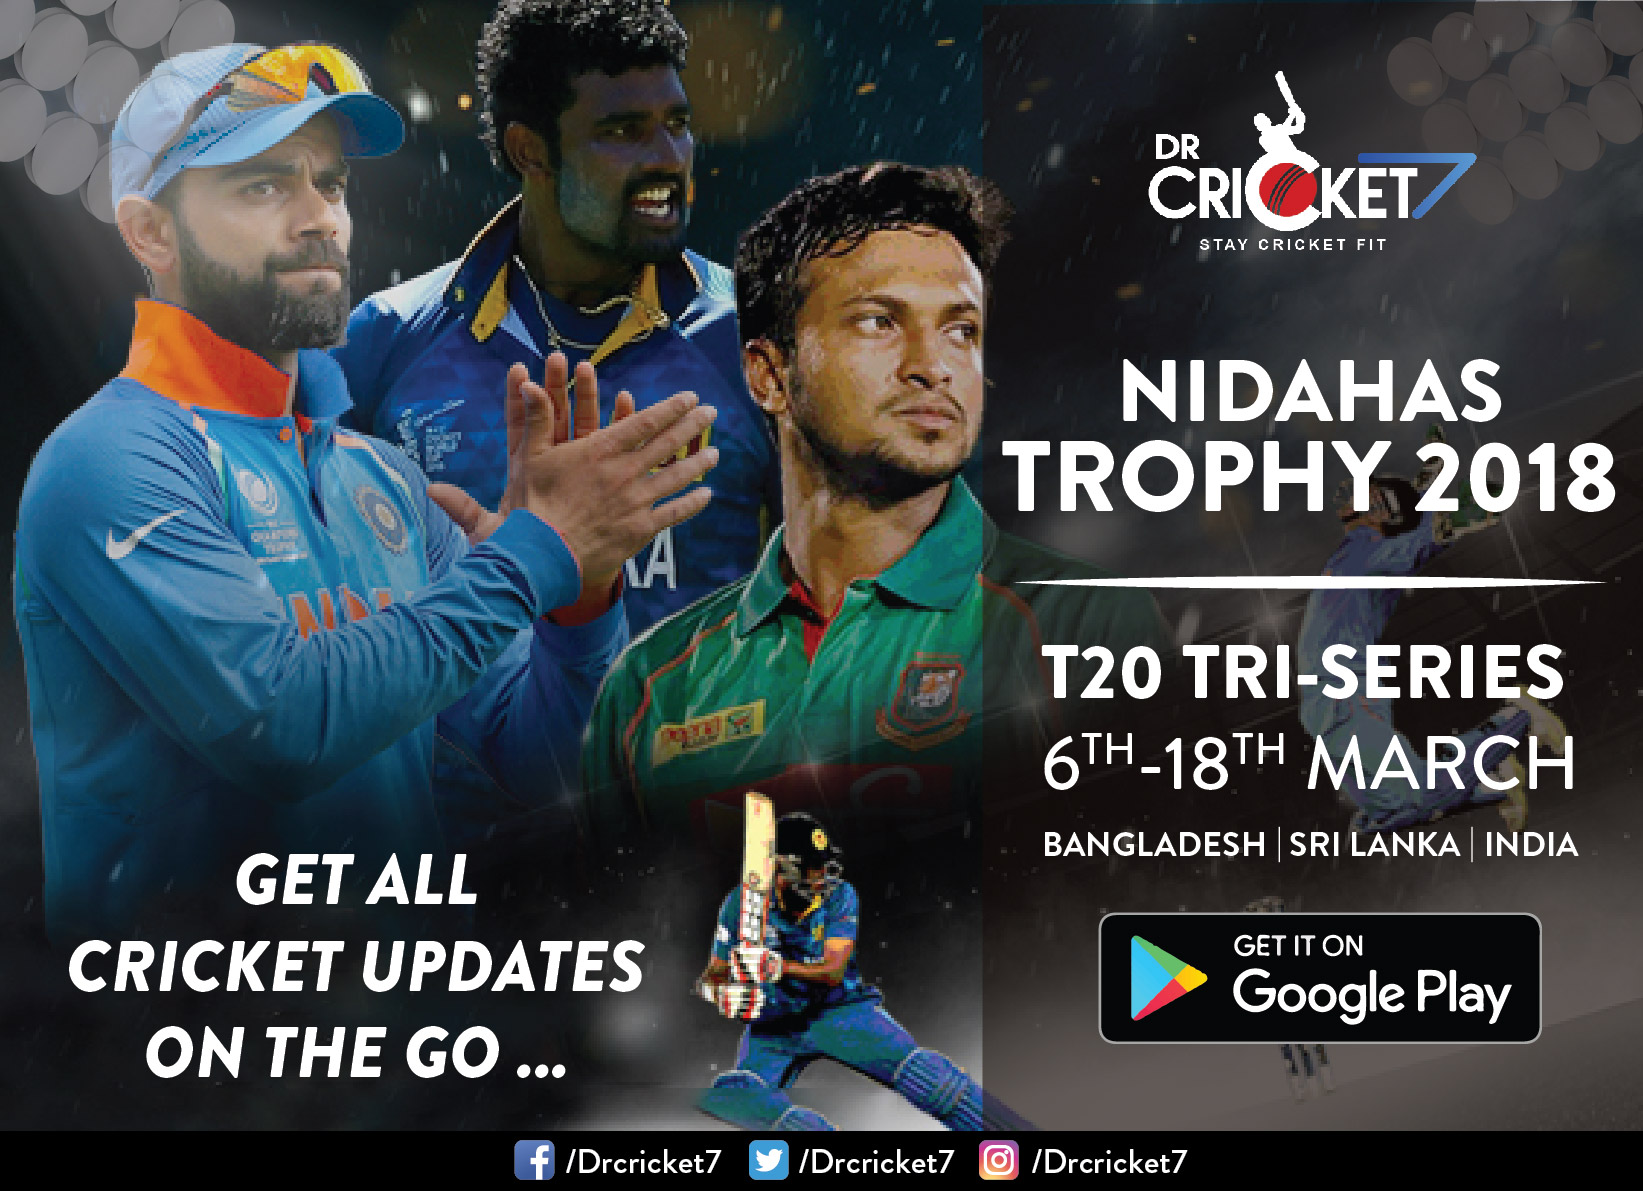 Team India for Nidahas Trophy 2018 announced